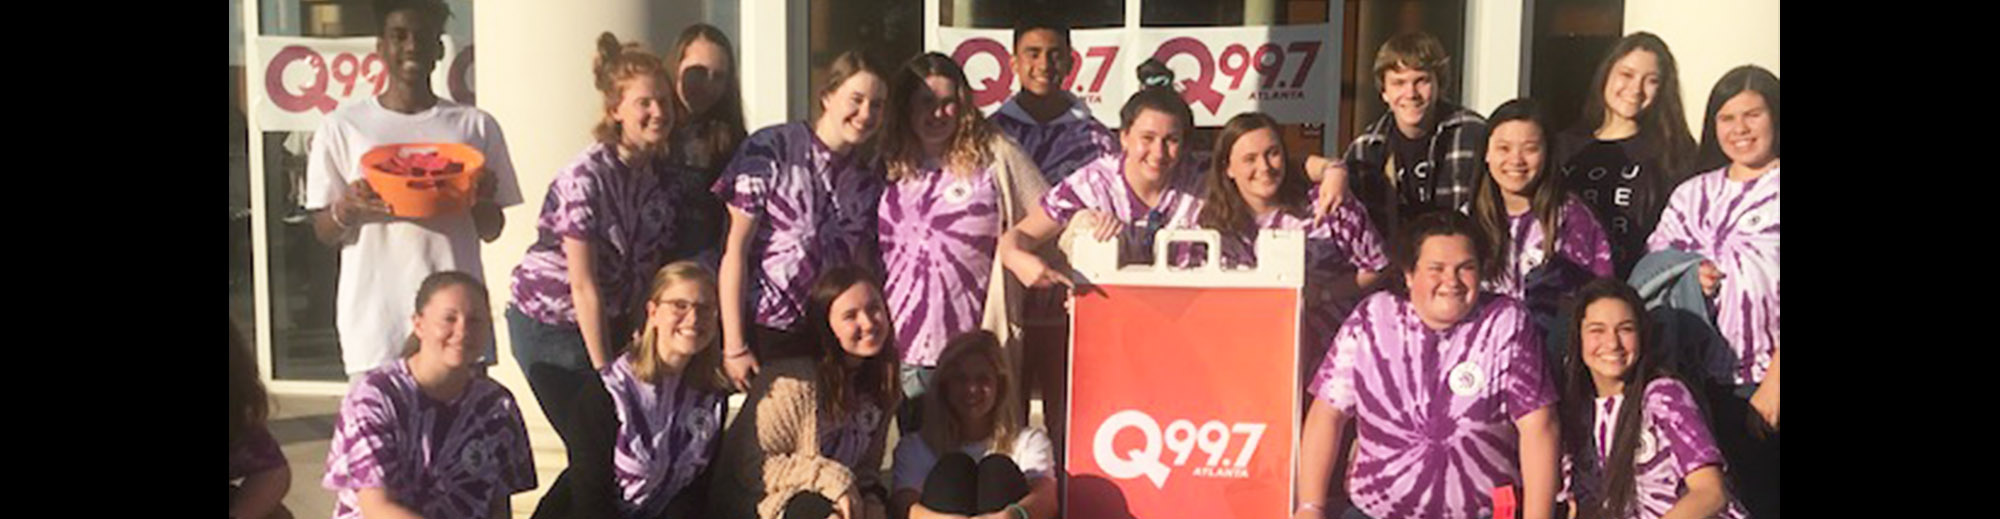 Group of happy Lassiter students next to a Q99.7 sign